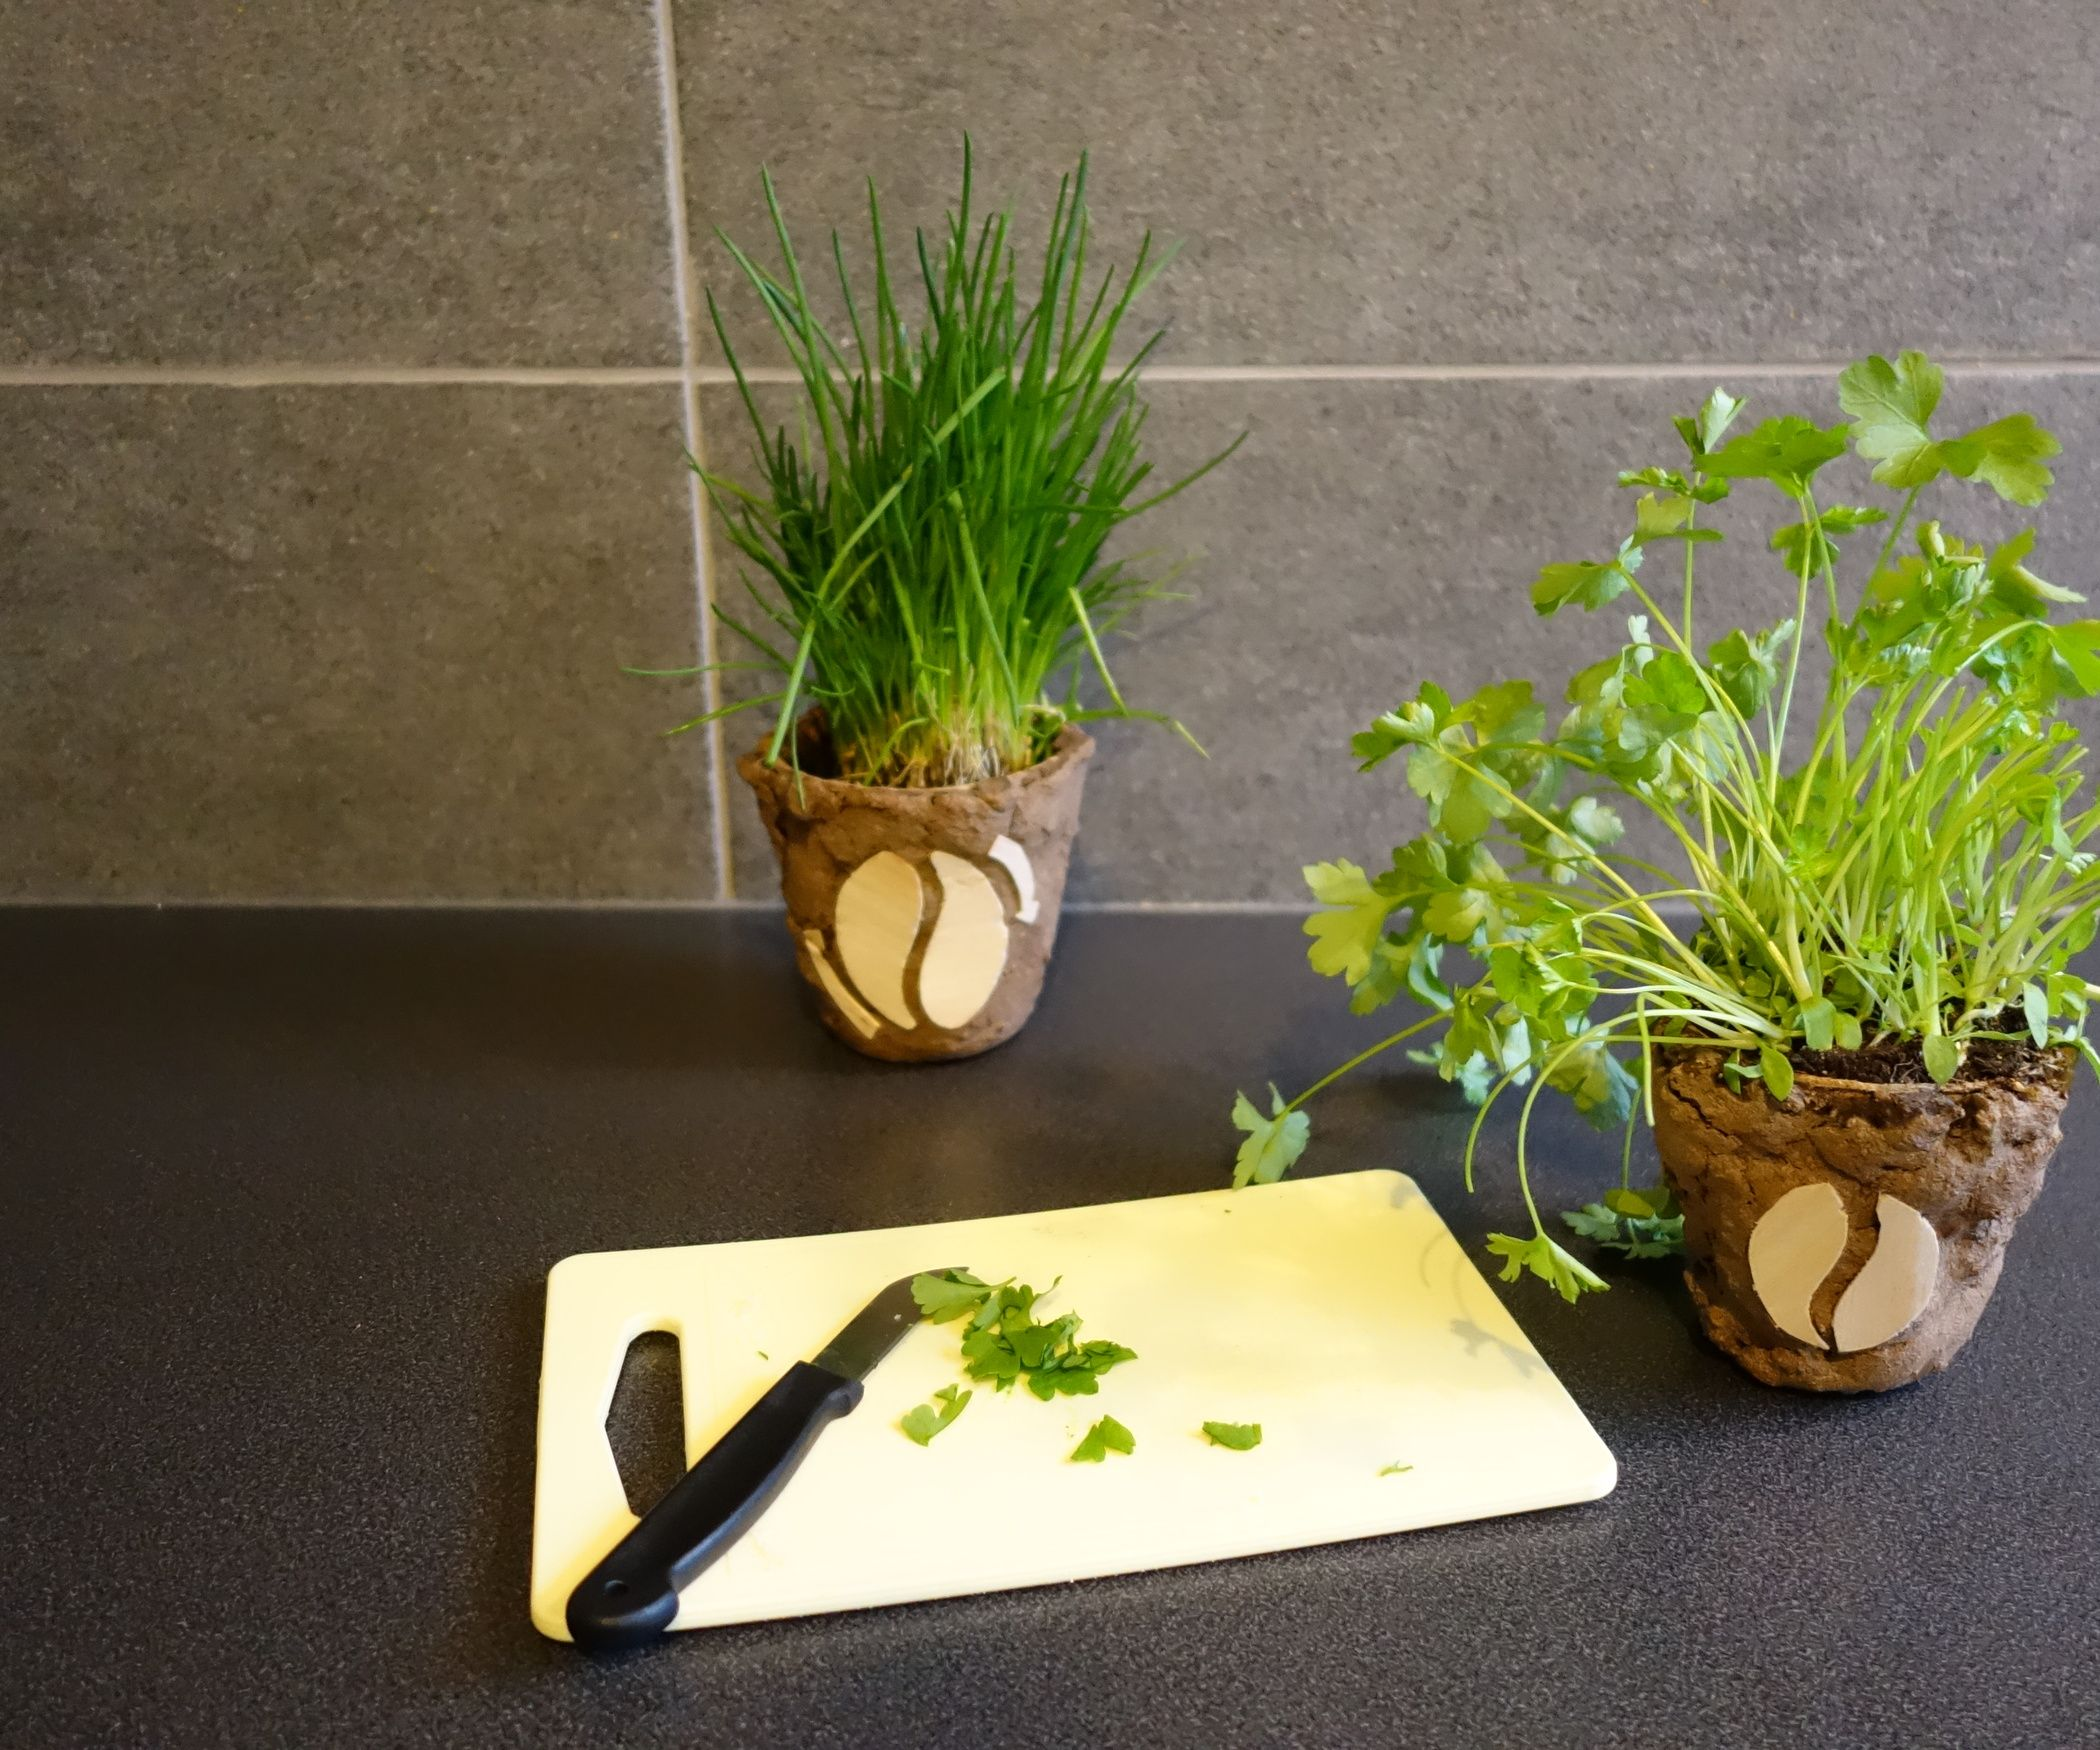 Diy Biodegradable Pots: Biodegradable Flower Pots Out Of Coffee Grounds